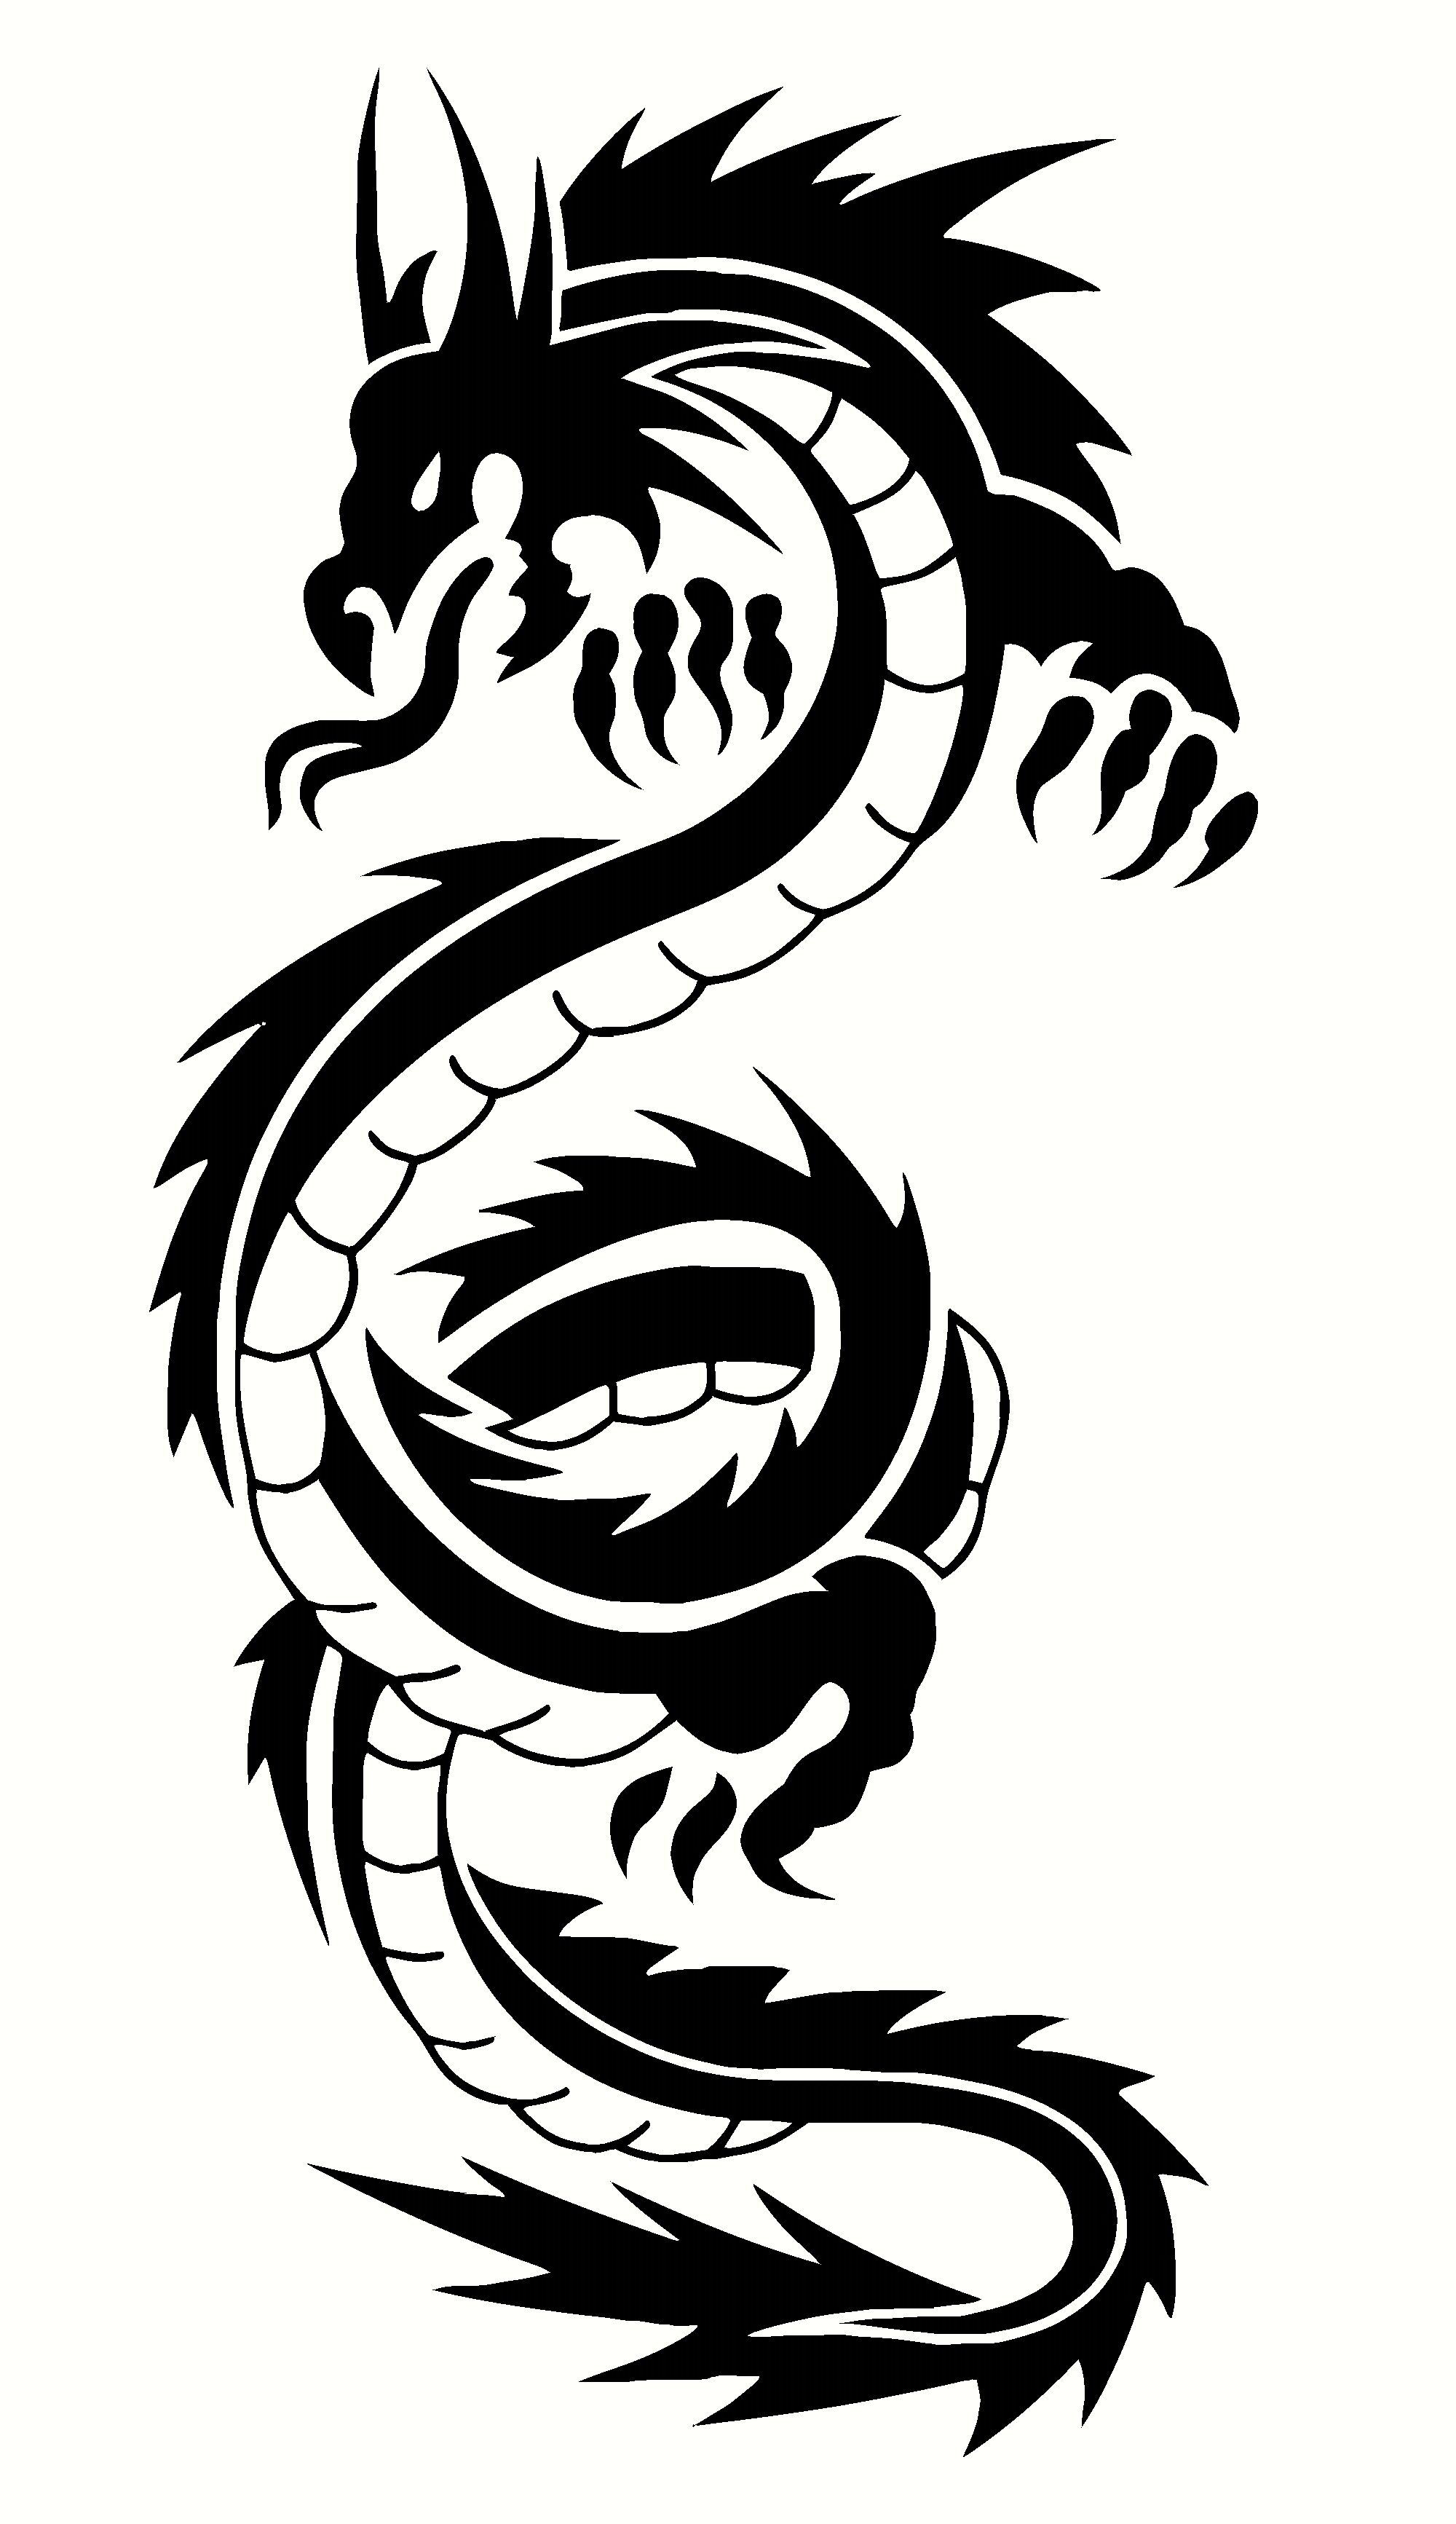 Chinese dragon tattoo design idea i would love this tattoo chinese dragon tattoo design idea i would love this tattoo biocorpaavc